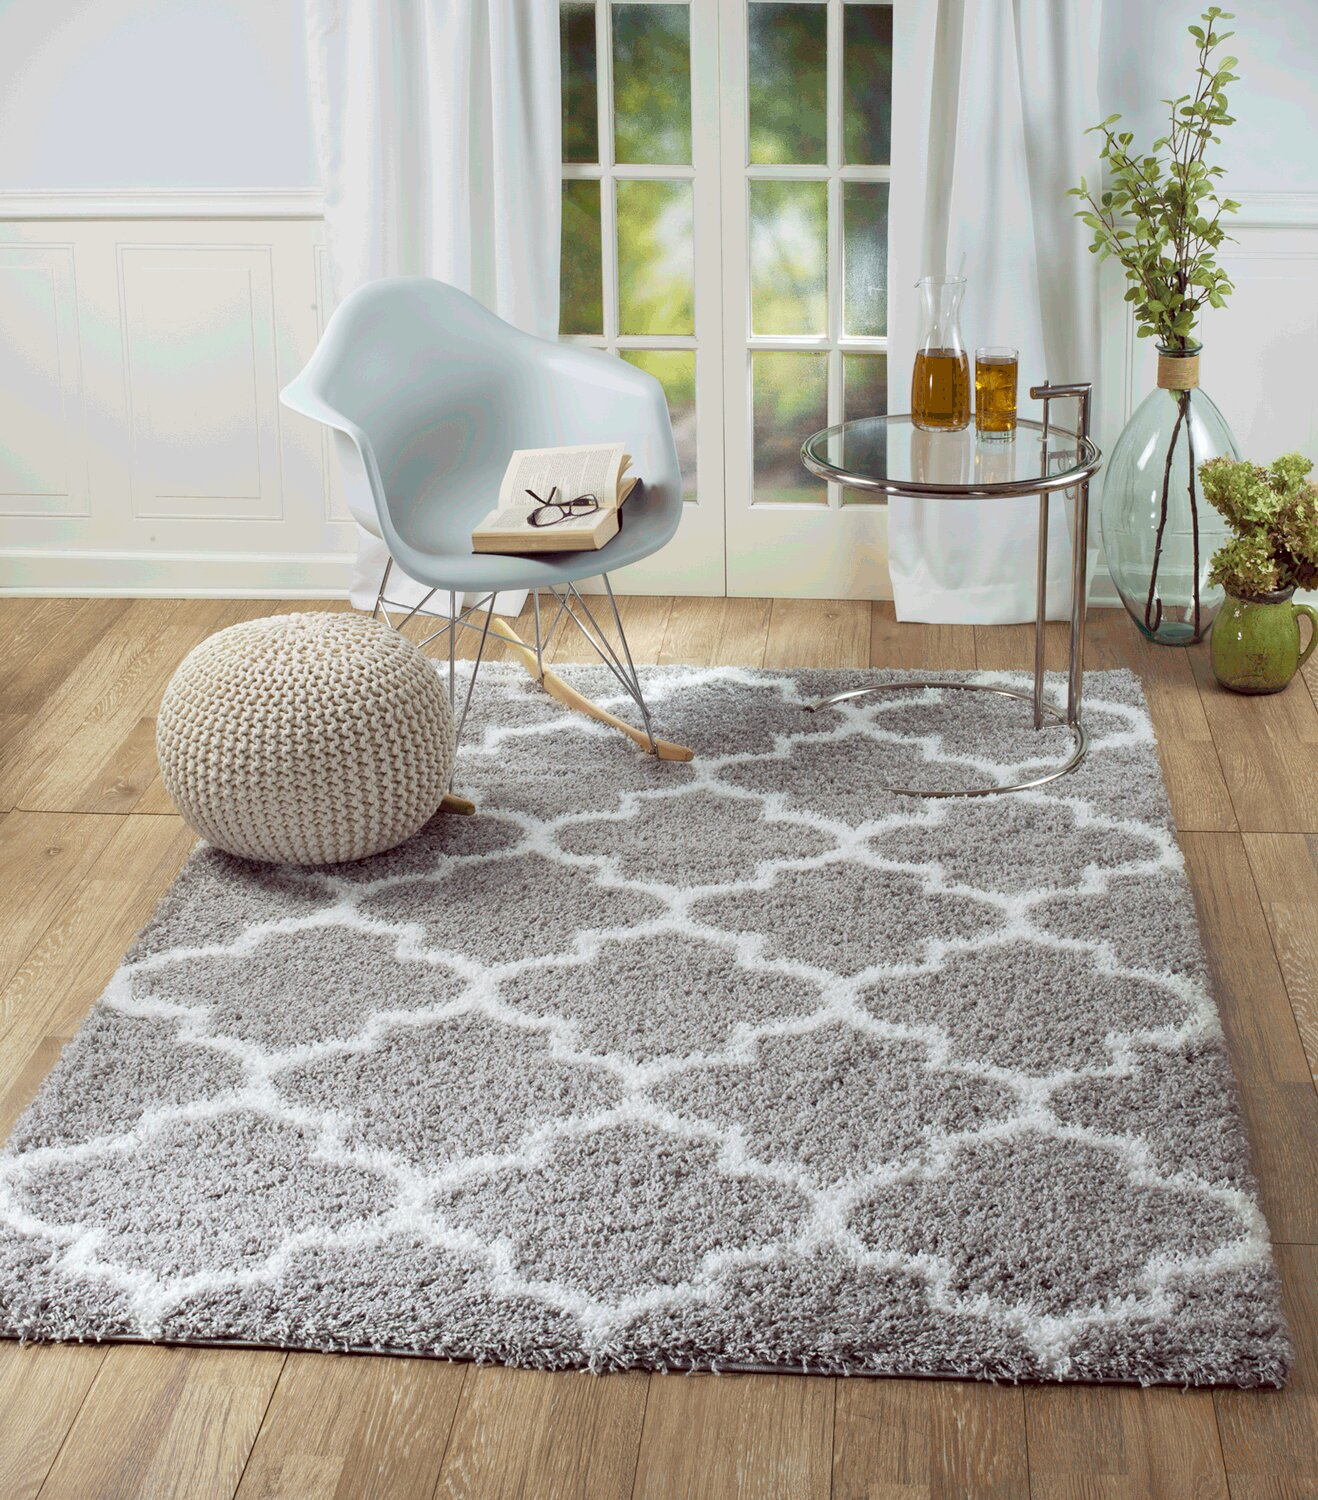 target striped chevron grey cream rug home cozy room dining kohls rugs at using bedroom floor white decoration ideas decor and inexpensive area carpet gray plush depot for